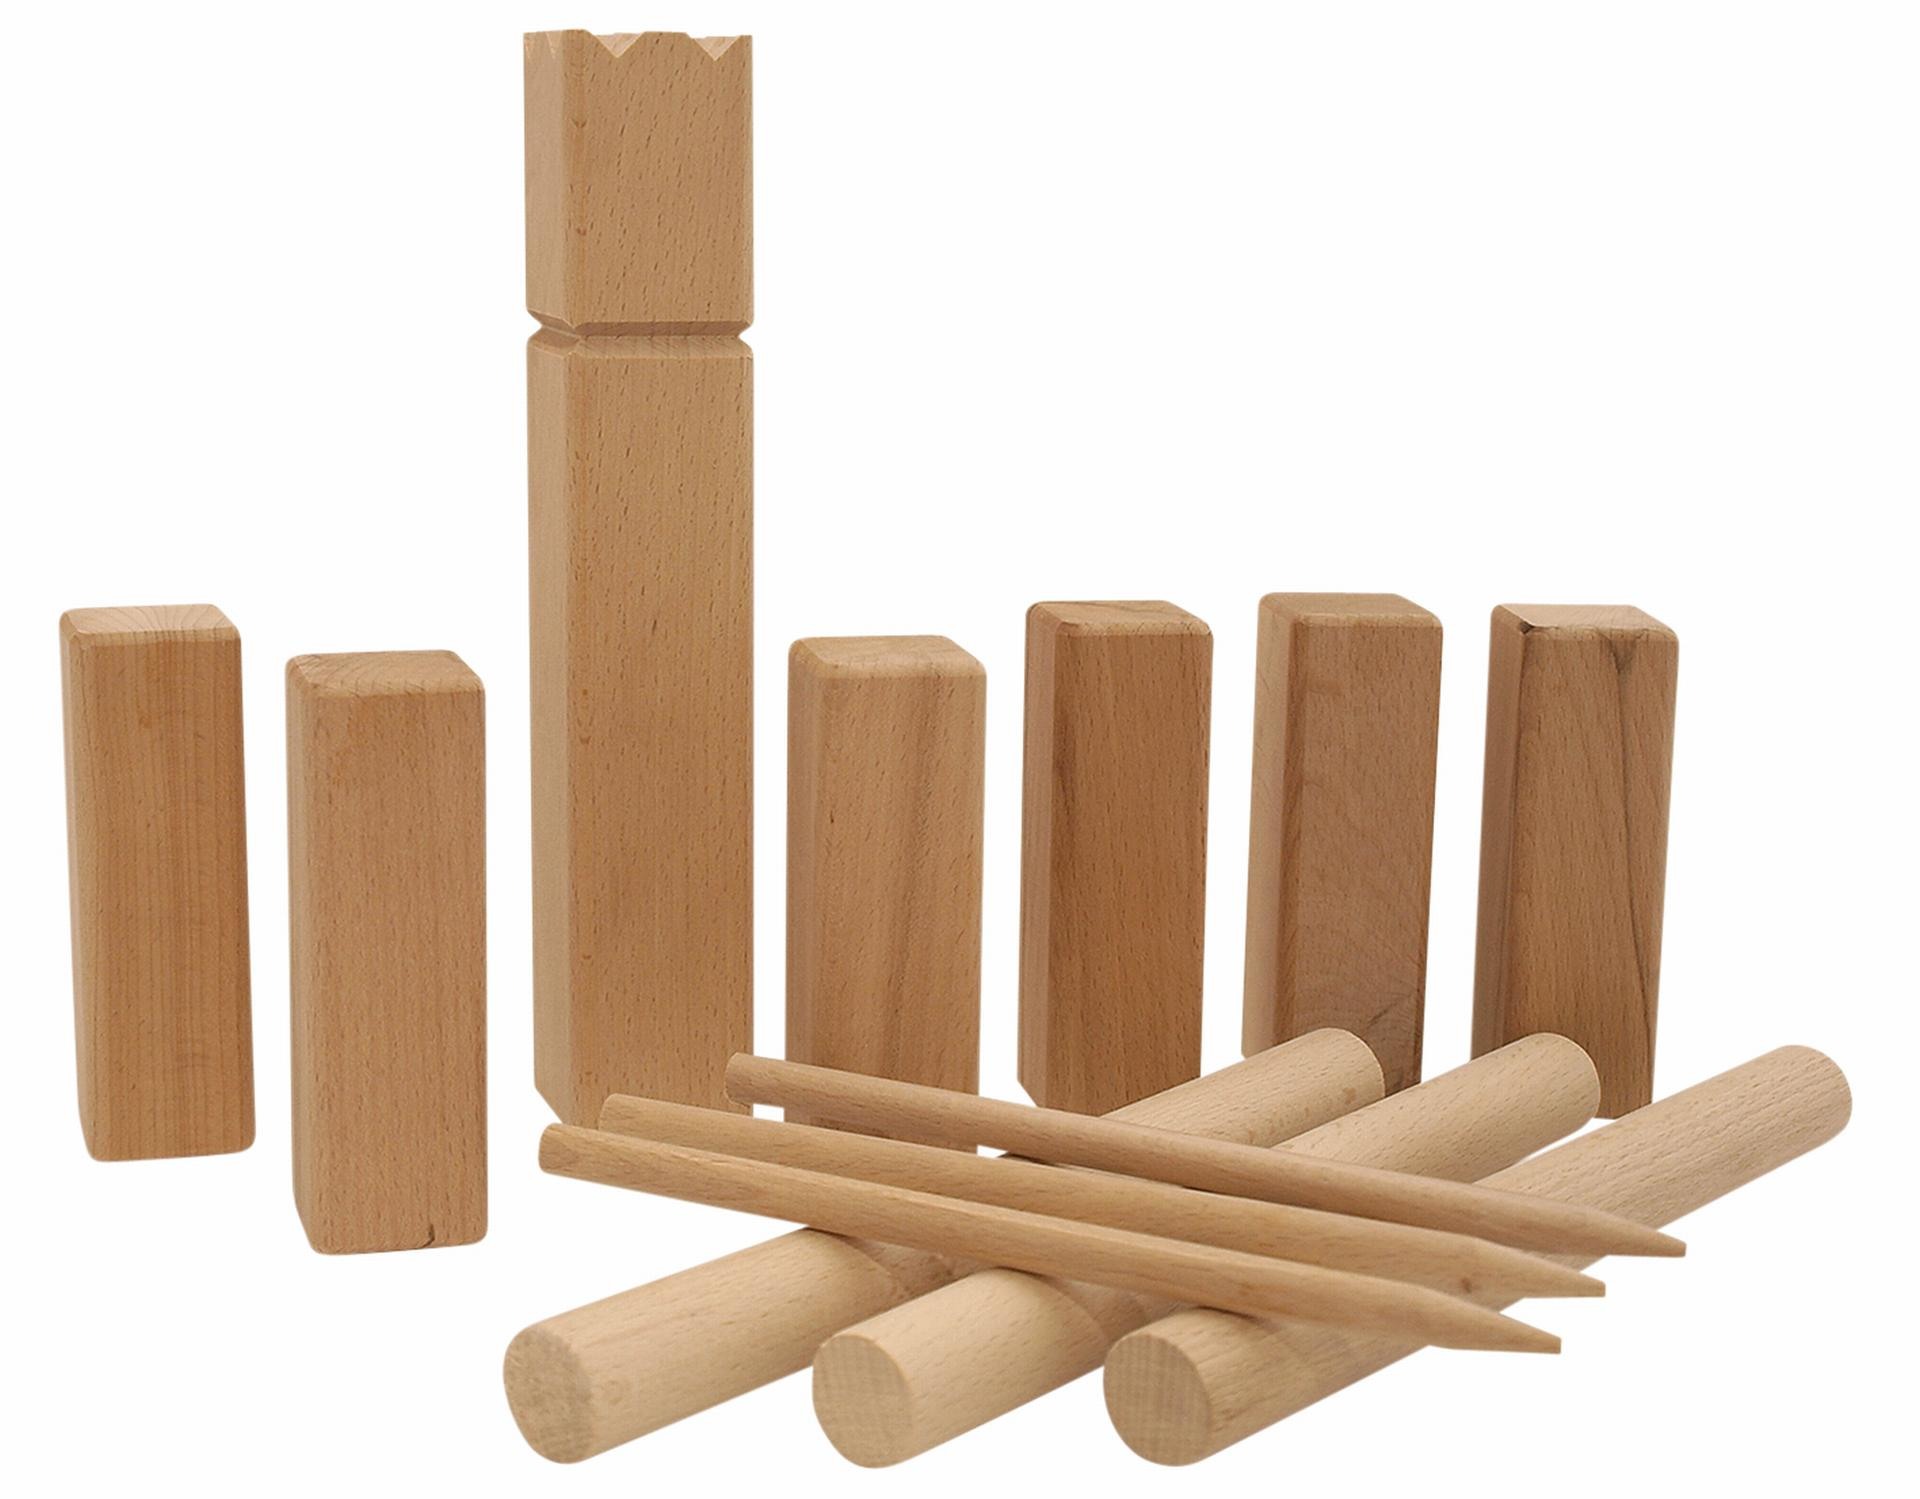 freiluftspiel super kubb junior g nstig online kaufen. Black Bedroom Furniture Sets. Home Design Ideas